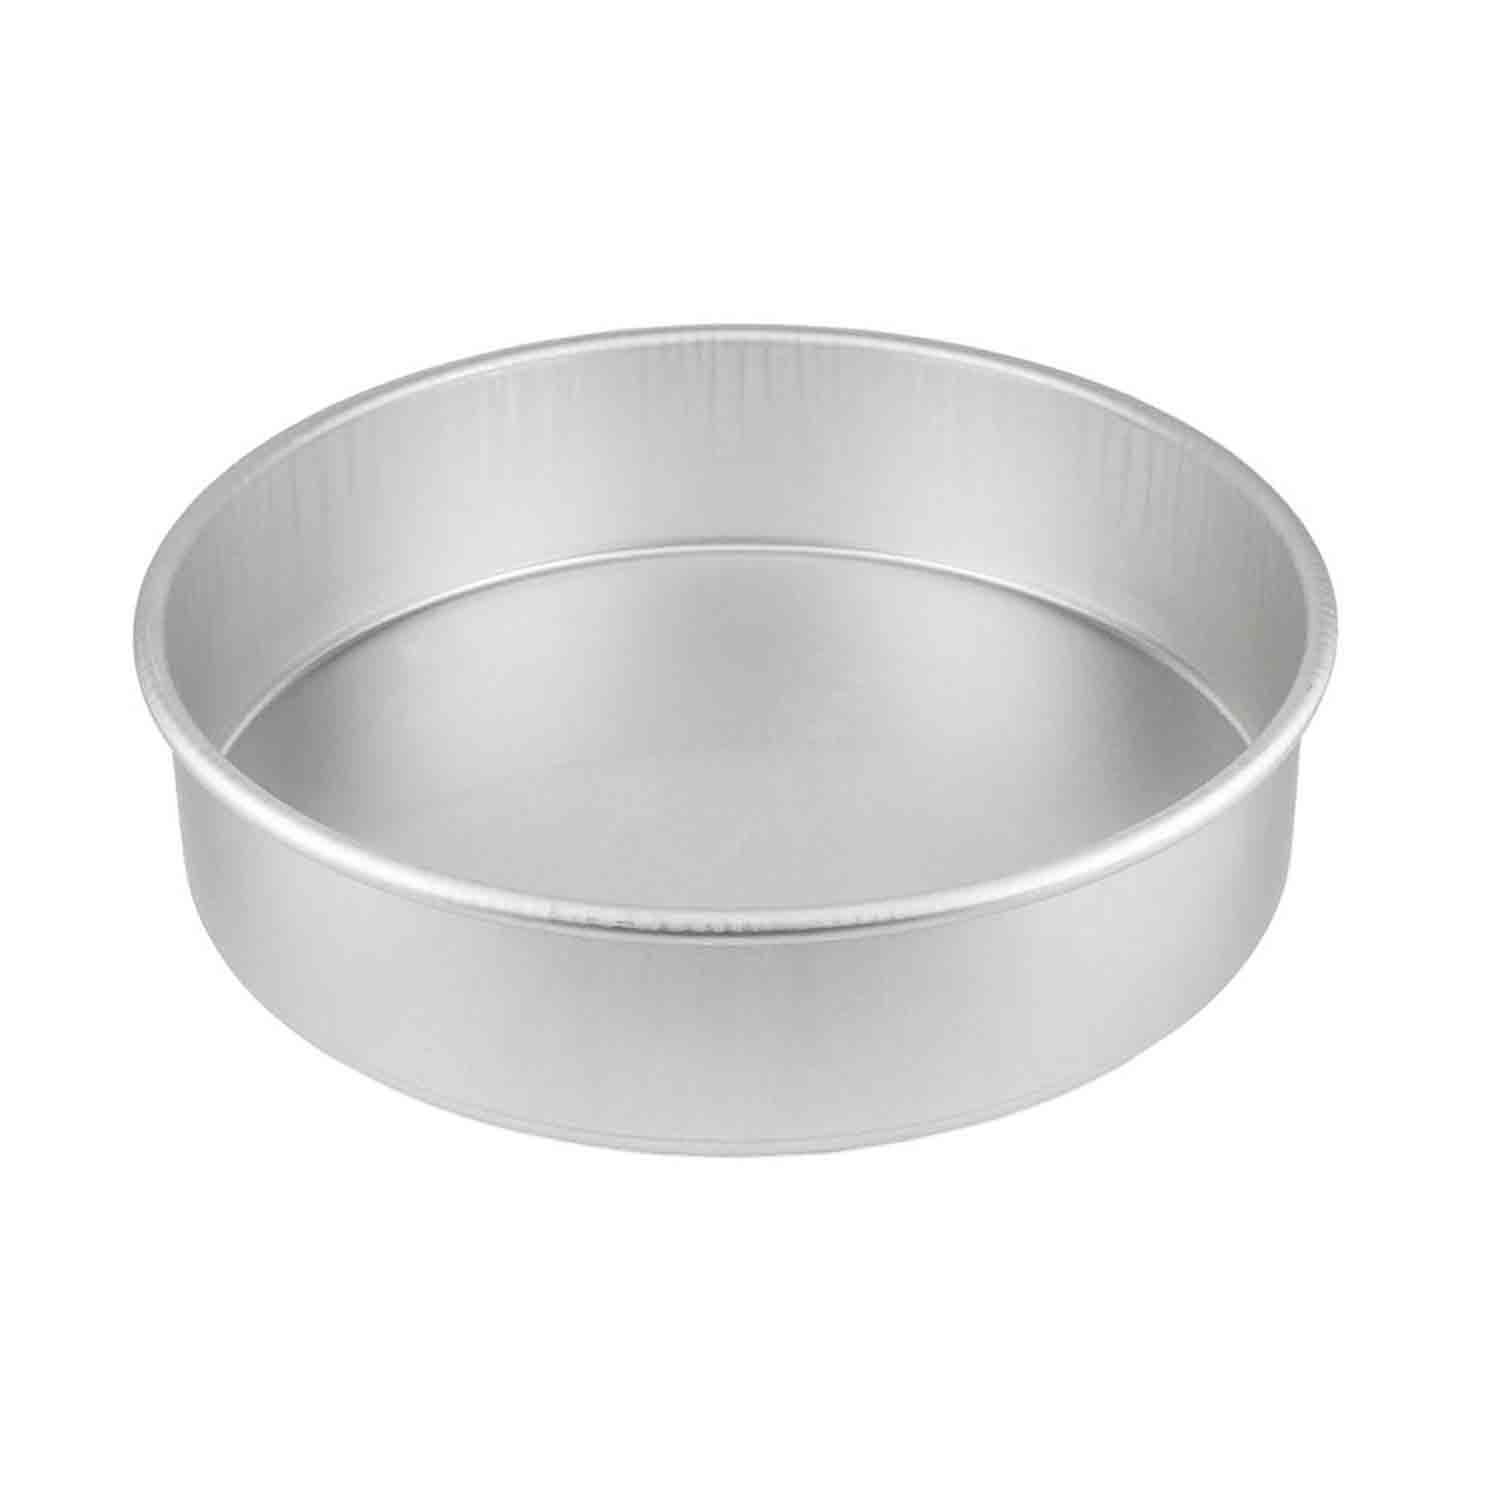 "12 x 3"" Magic Line Round Cake Pan"